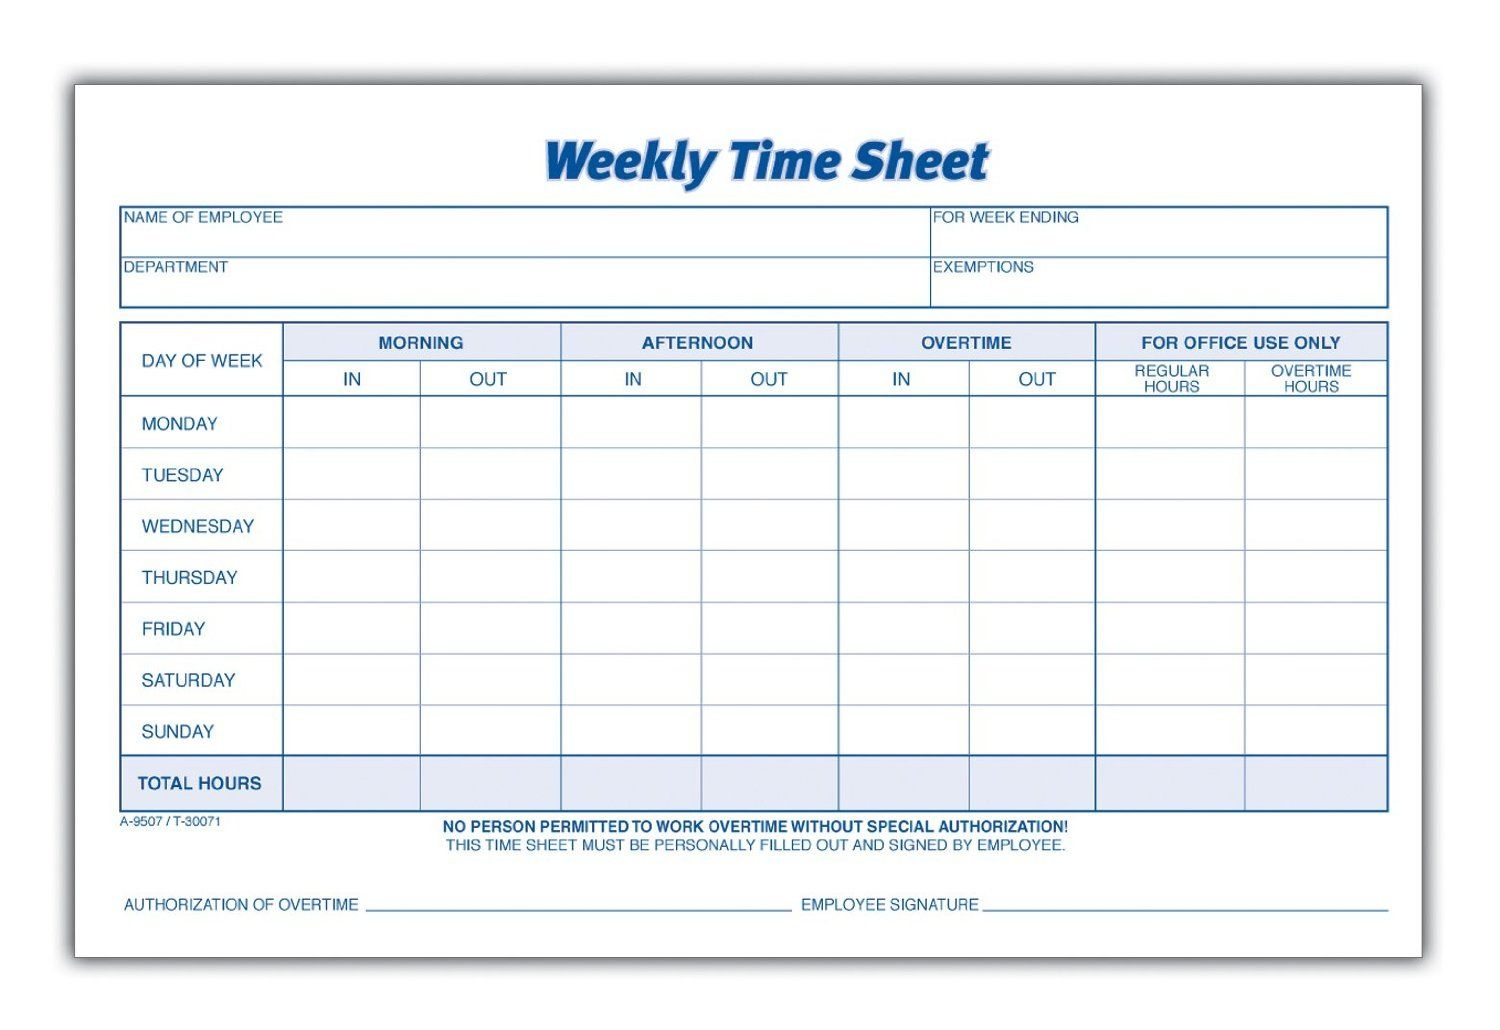 Weekly Employee Time Sheet | Good To Know | Timesheet Template - Free Printable Time Sheets Pdf